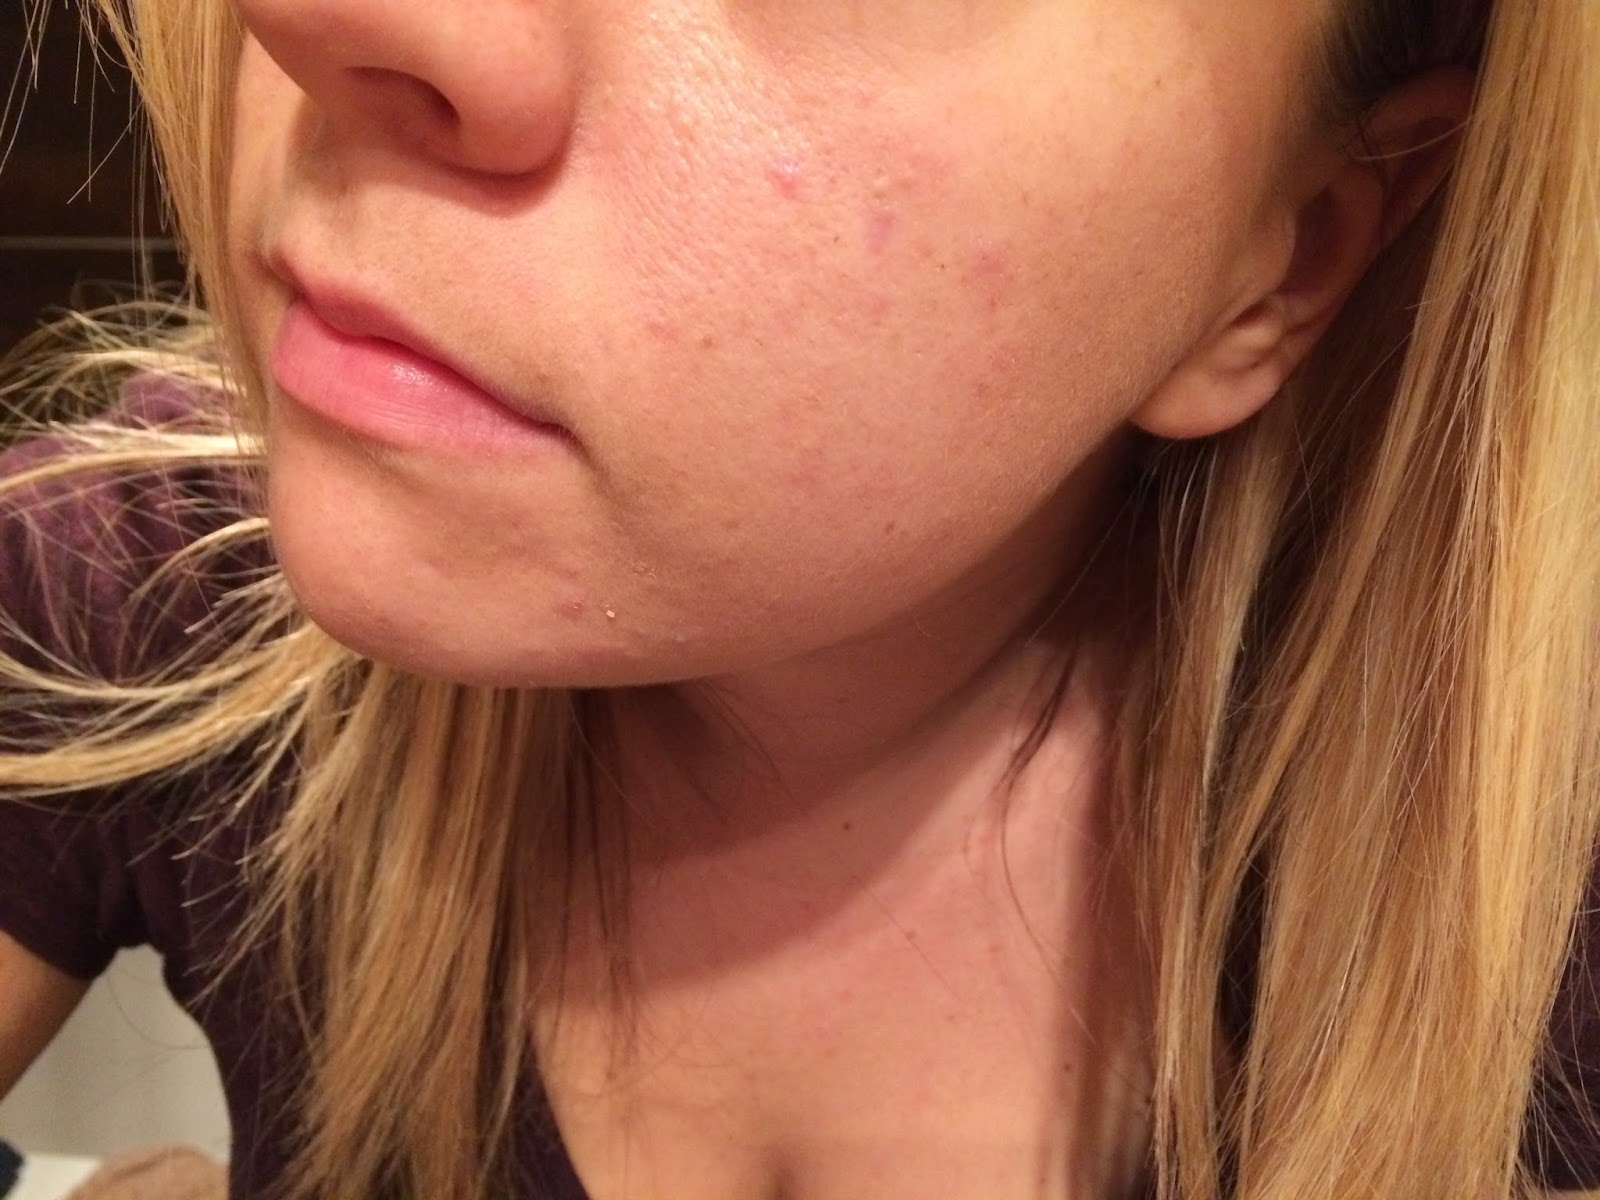 skin-that-had-recovered-from-acne